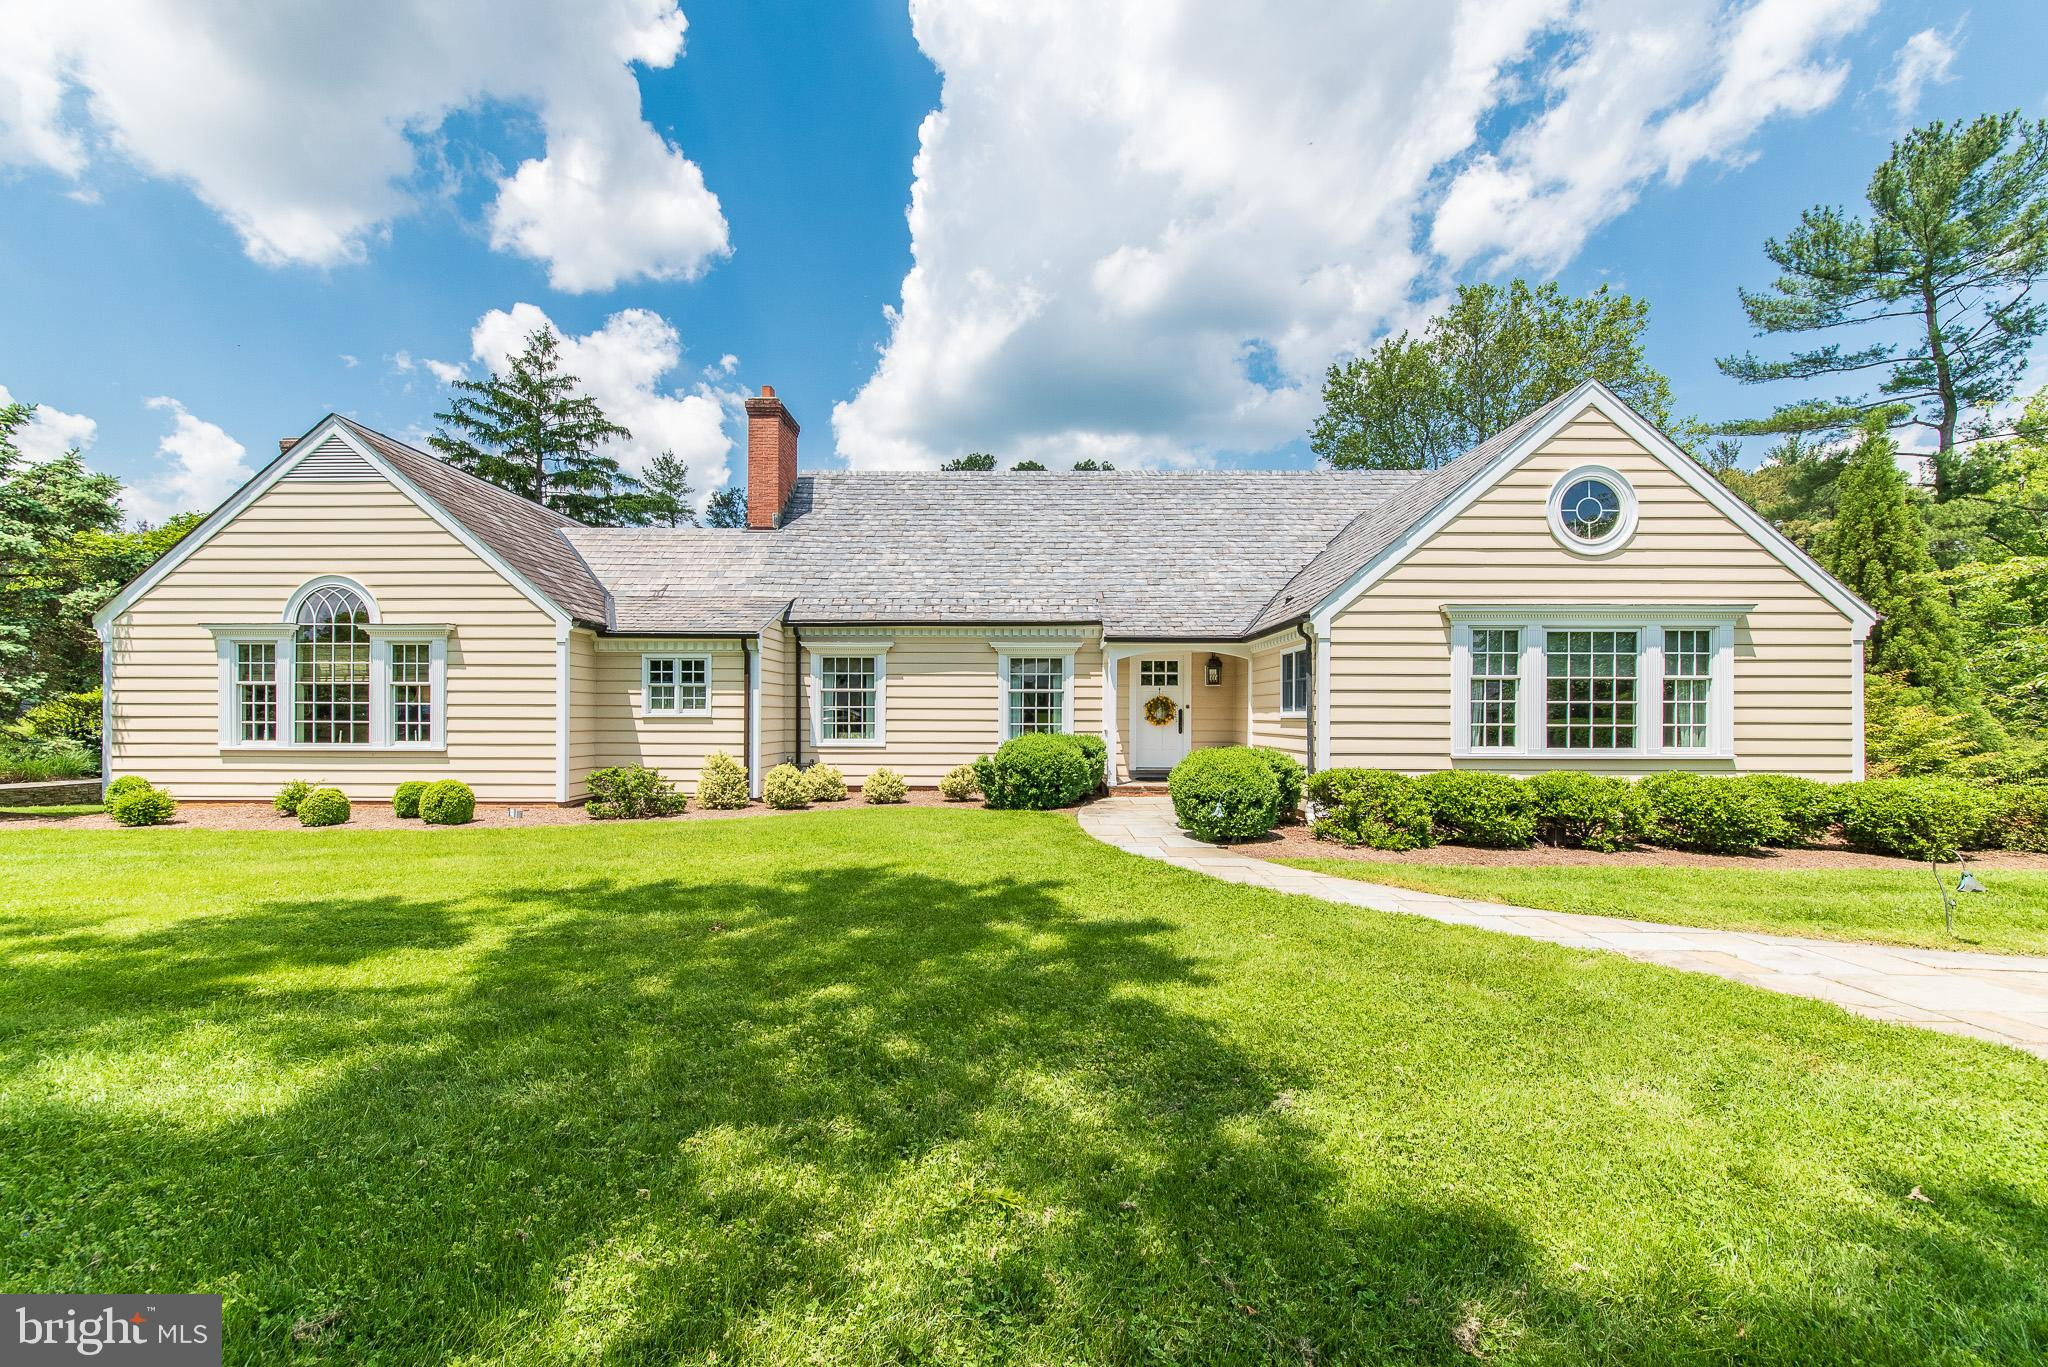 2218 BOXMERE ROAD, LUTHERVILLE TIMONIUM, MD 21093